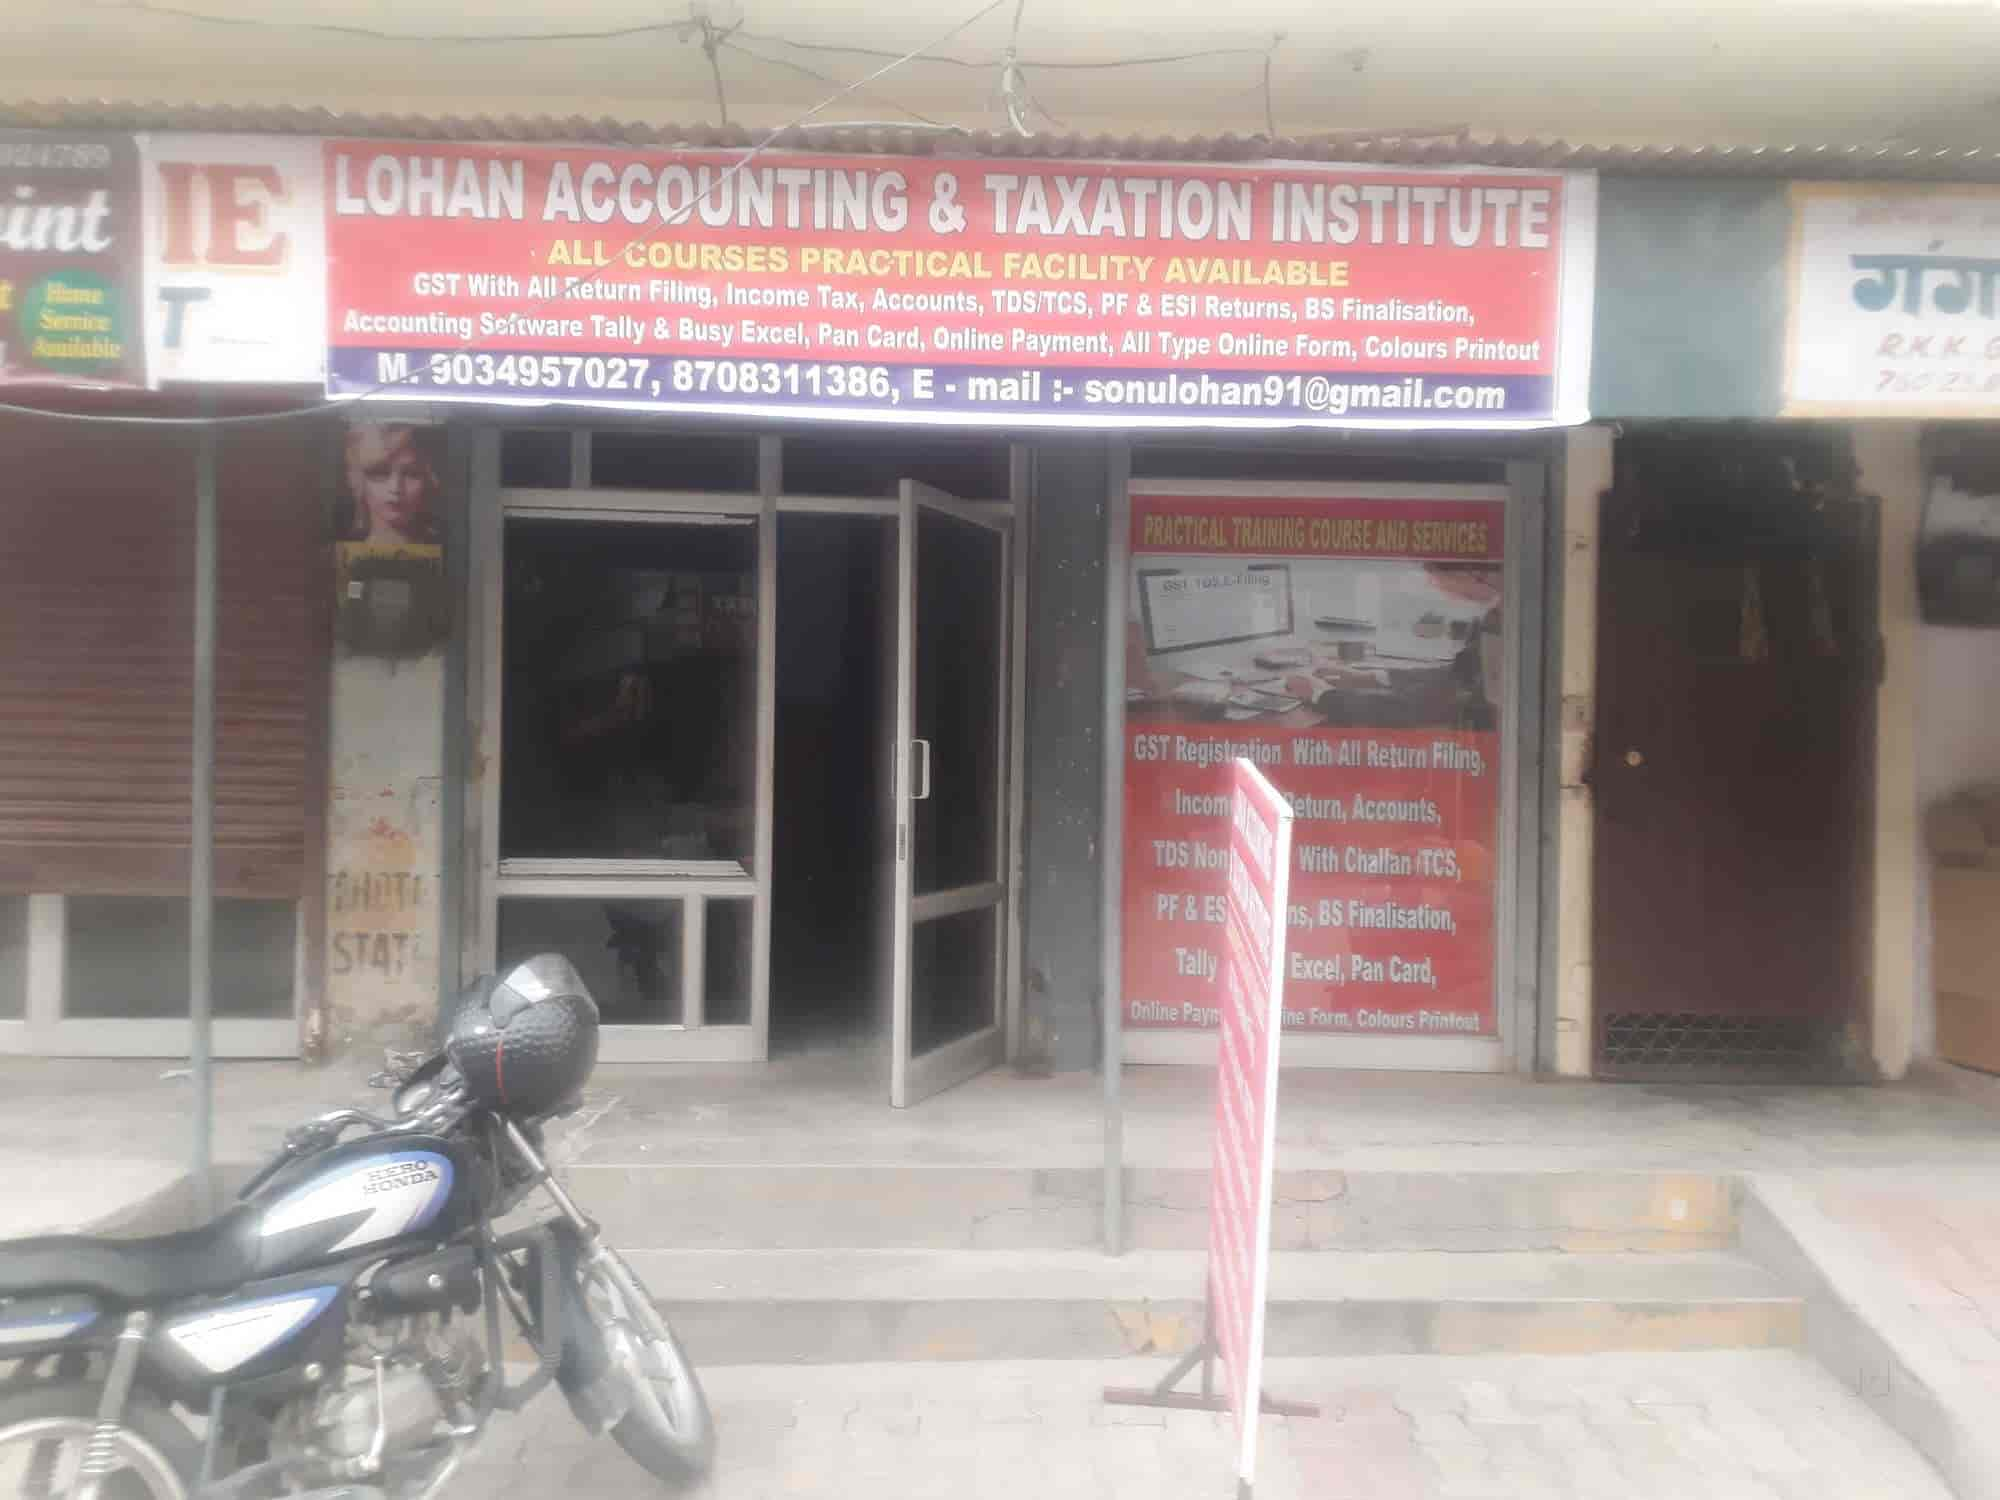 Lohan Accounting & Taxation Institute, Dlf Colony - Tax Consultants